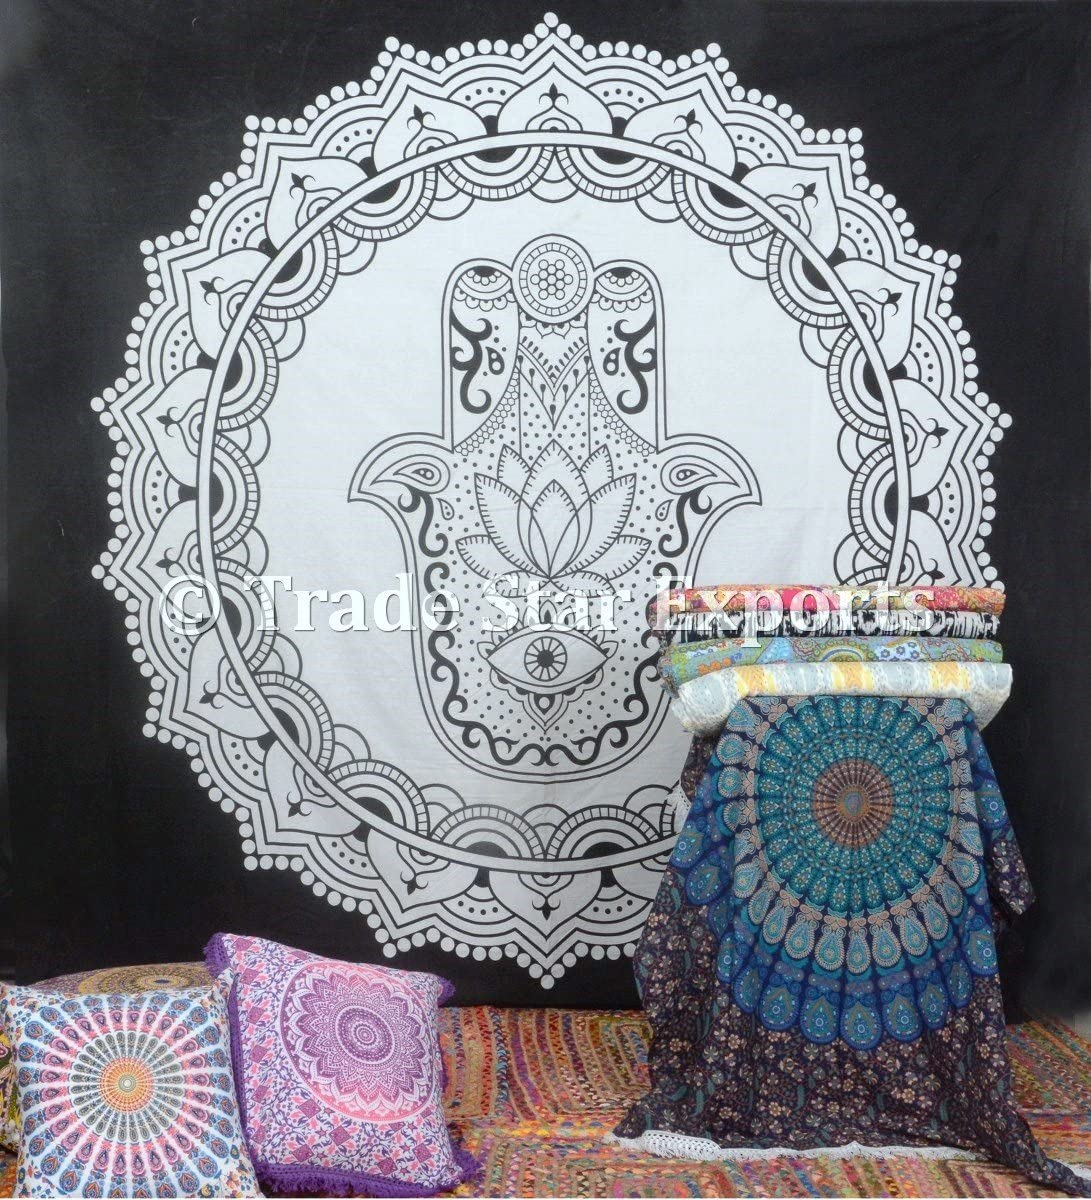 Indian Ethnic Tapestry, Hamsa Hand Tapestry Wall Hanging, Black and White Tapestry, Decorative Wall Art, Bohemian Wall Decor, Cotton Throw , Psychedelic Art, Dorm Room Decor Pattern 3